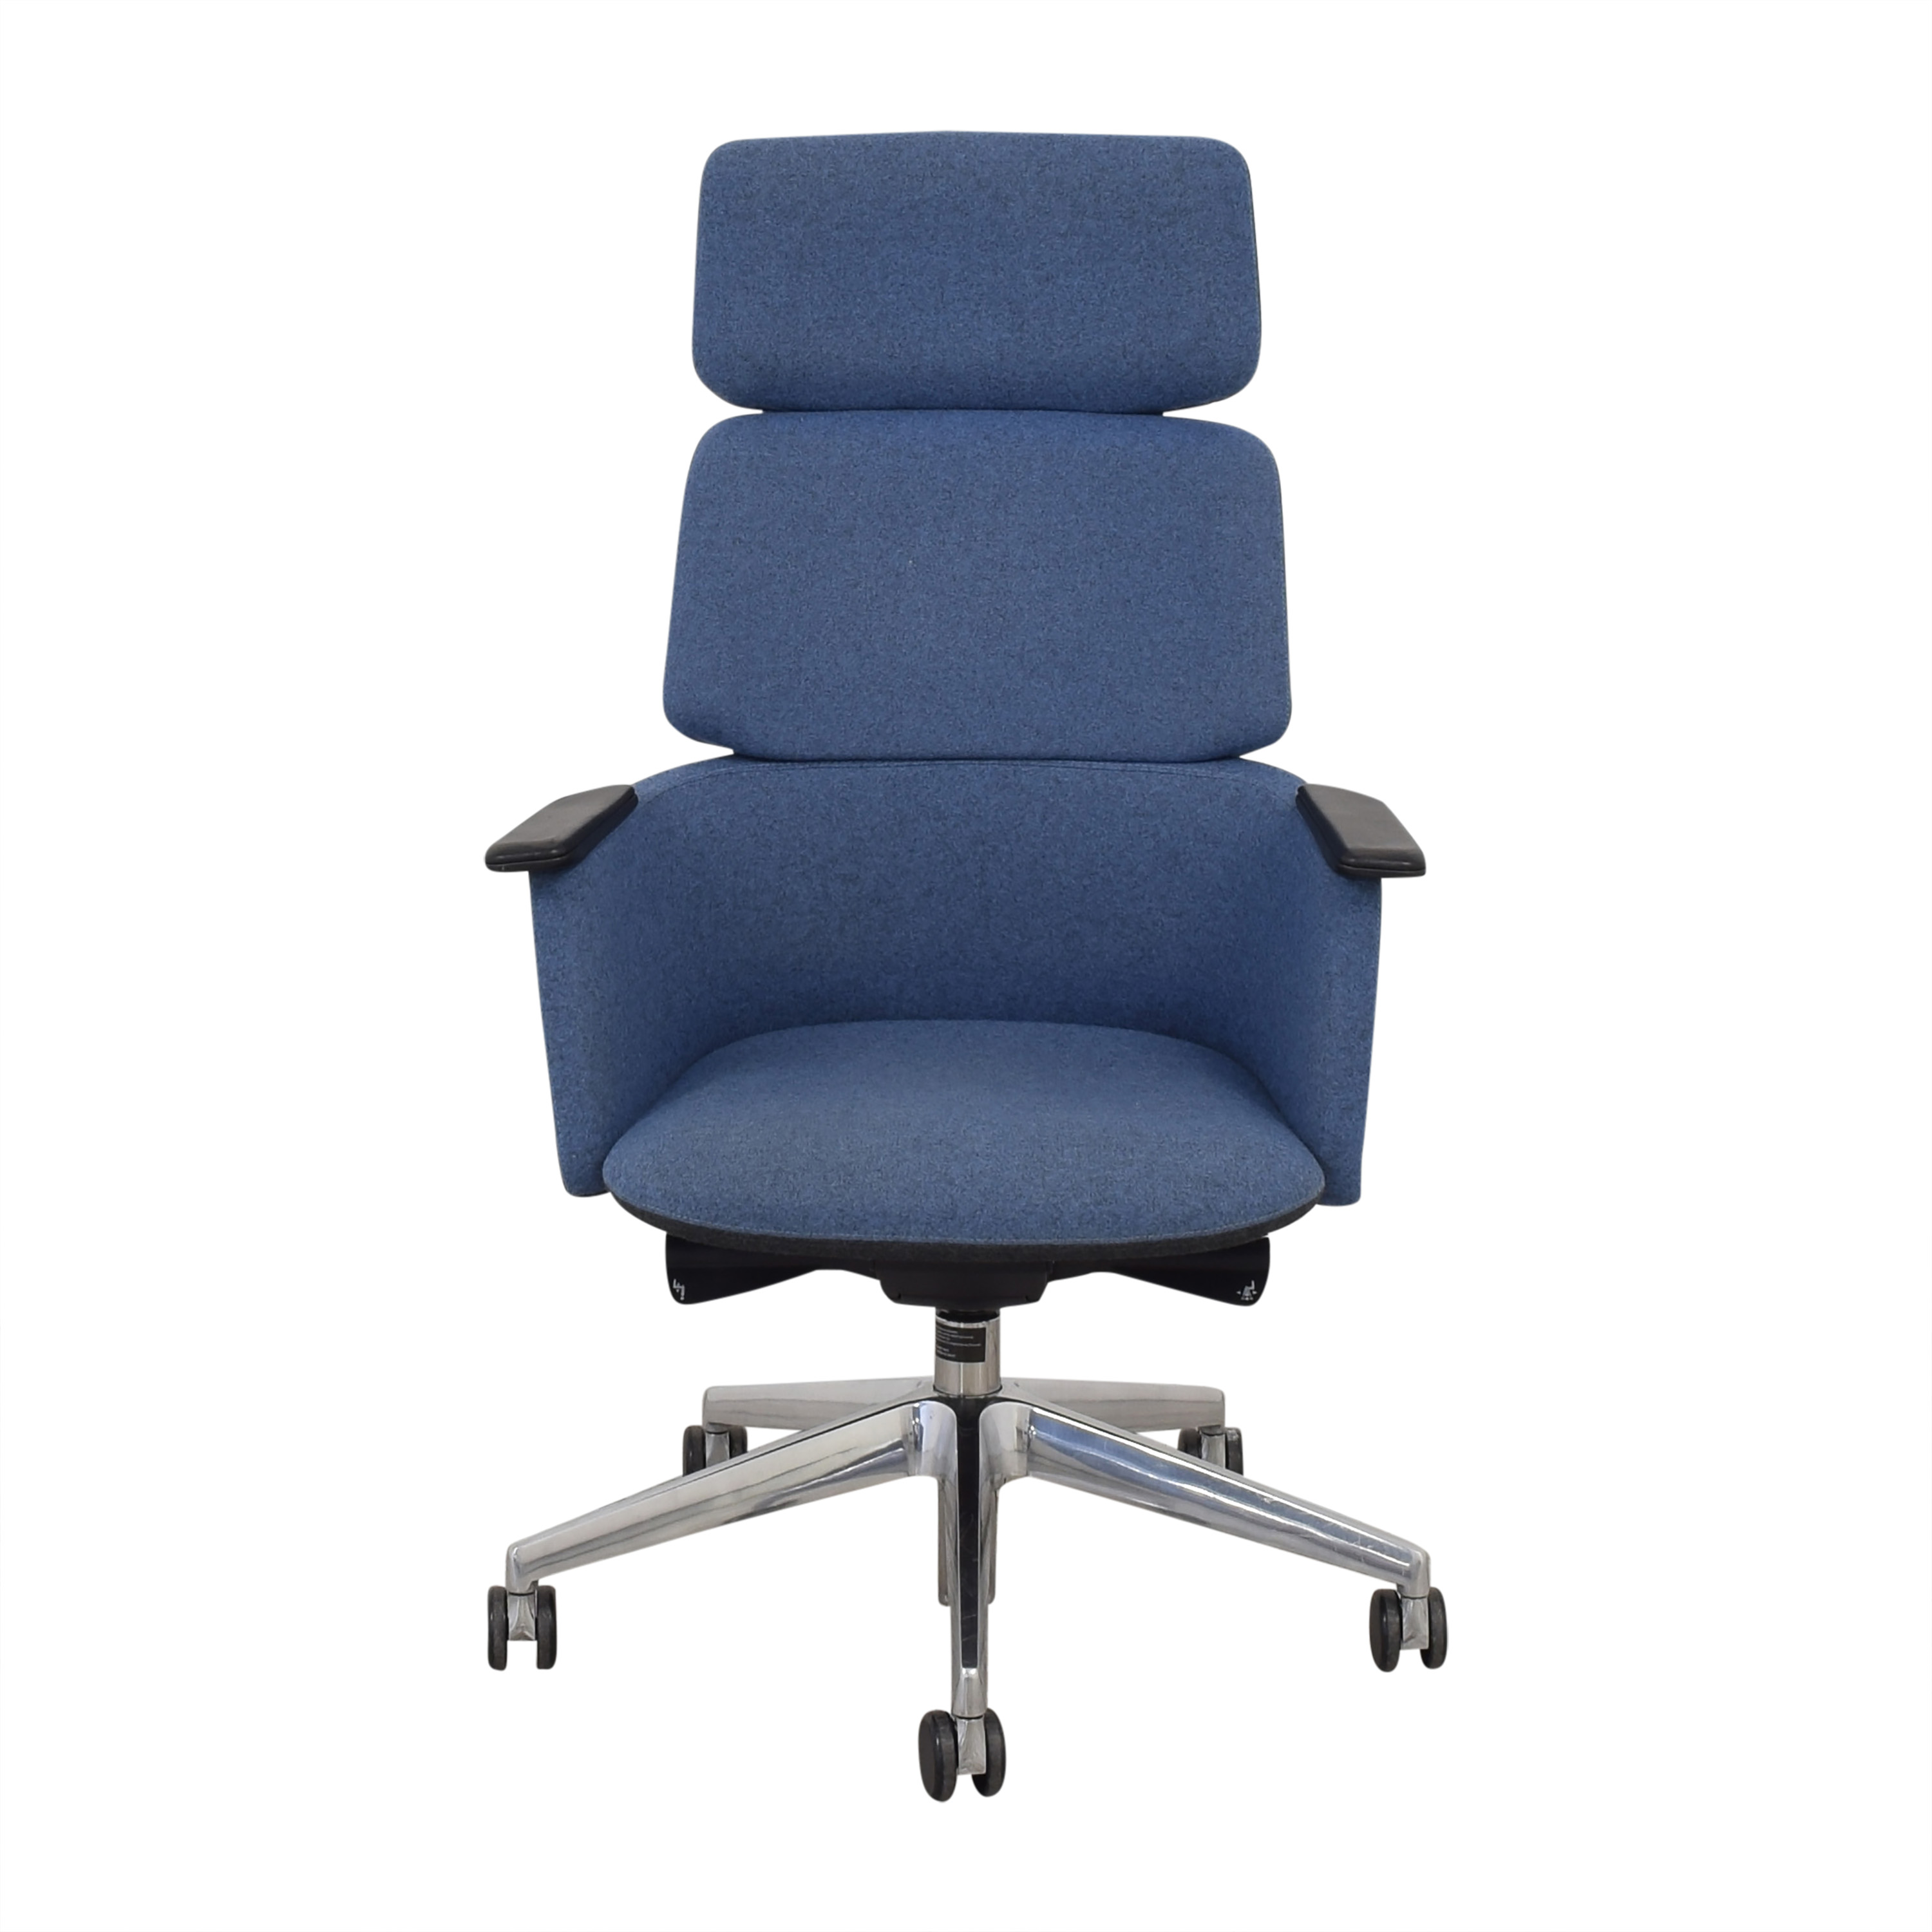 Koleksiyon Tola Managerial Chair / Chairs